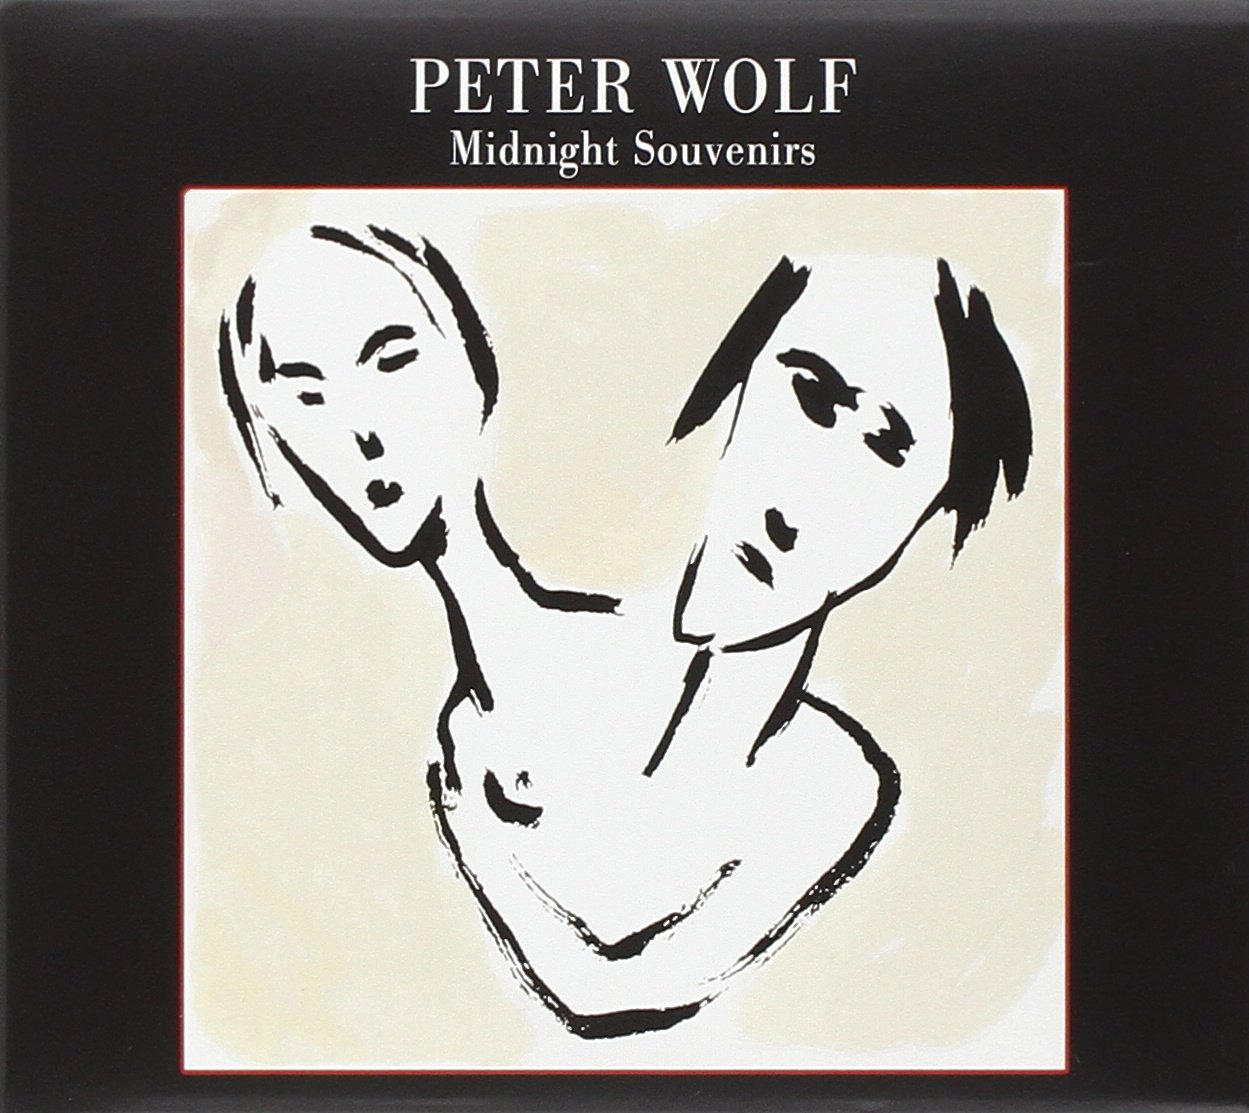 PETER WOLF   Midnight Souvenirs, 2010, Kenny White, 49:20